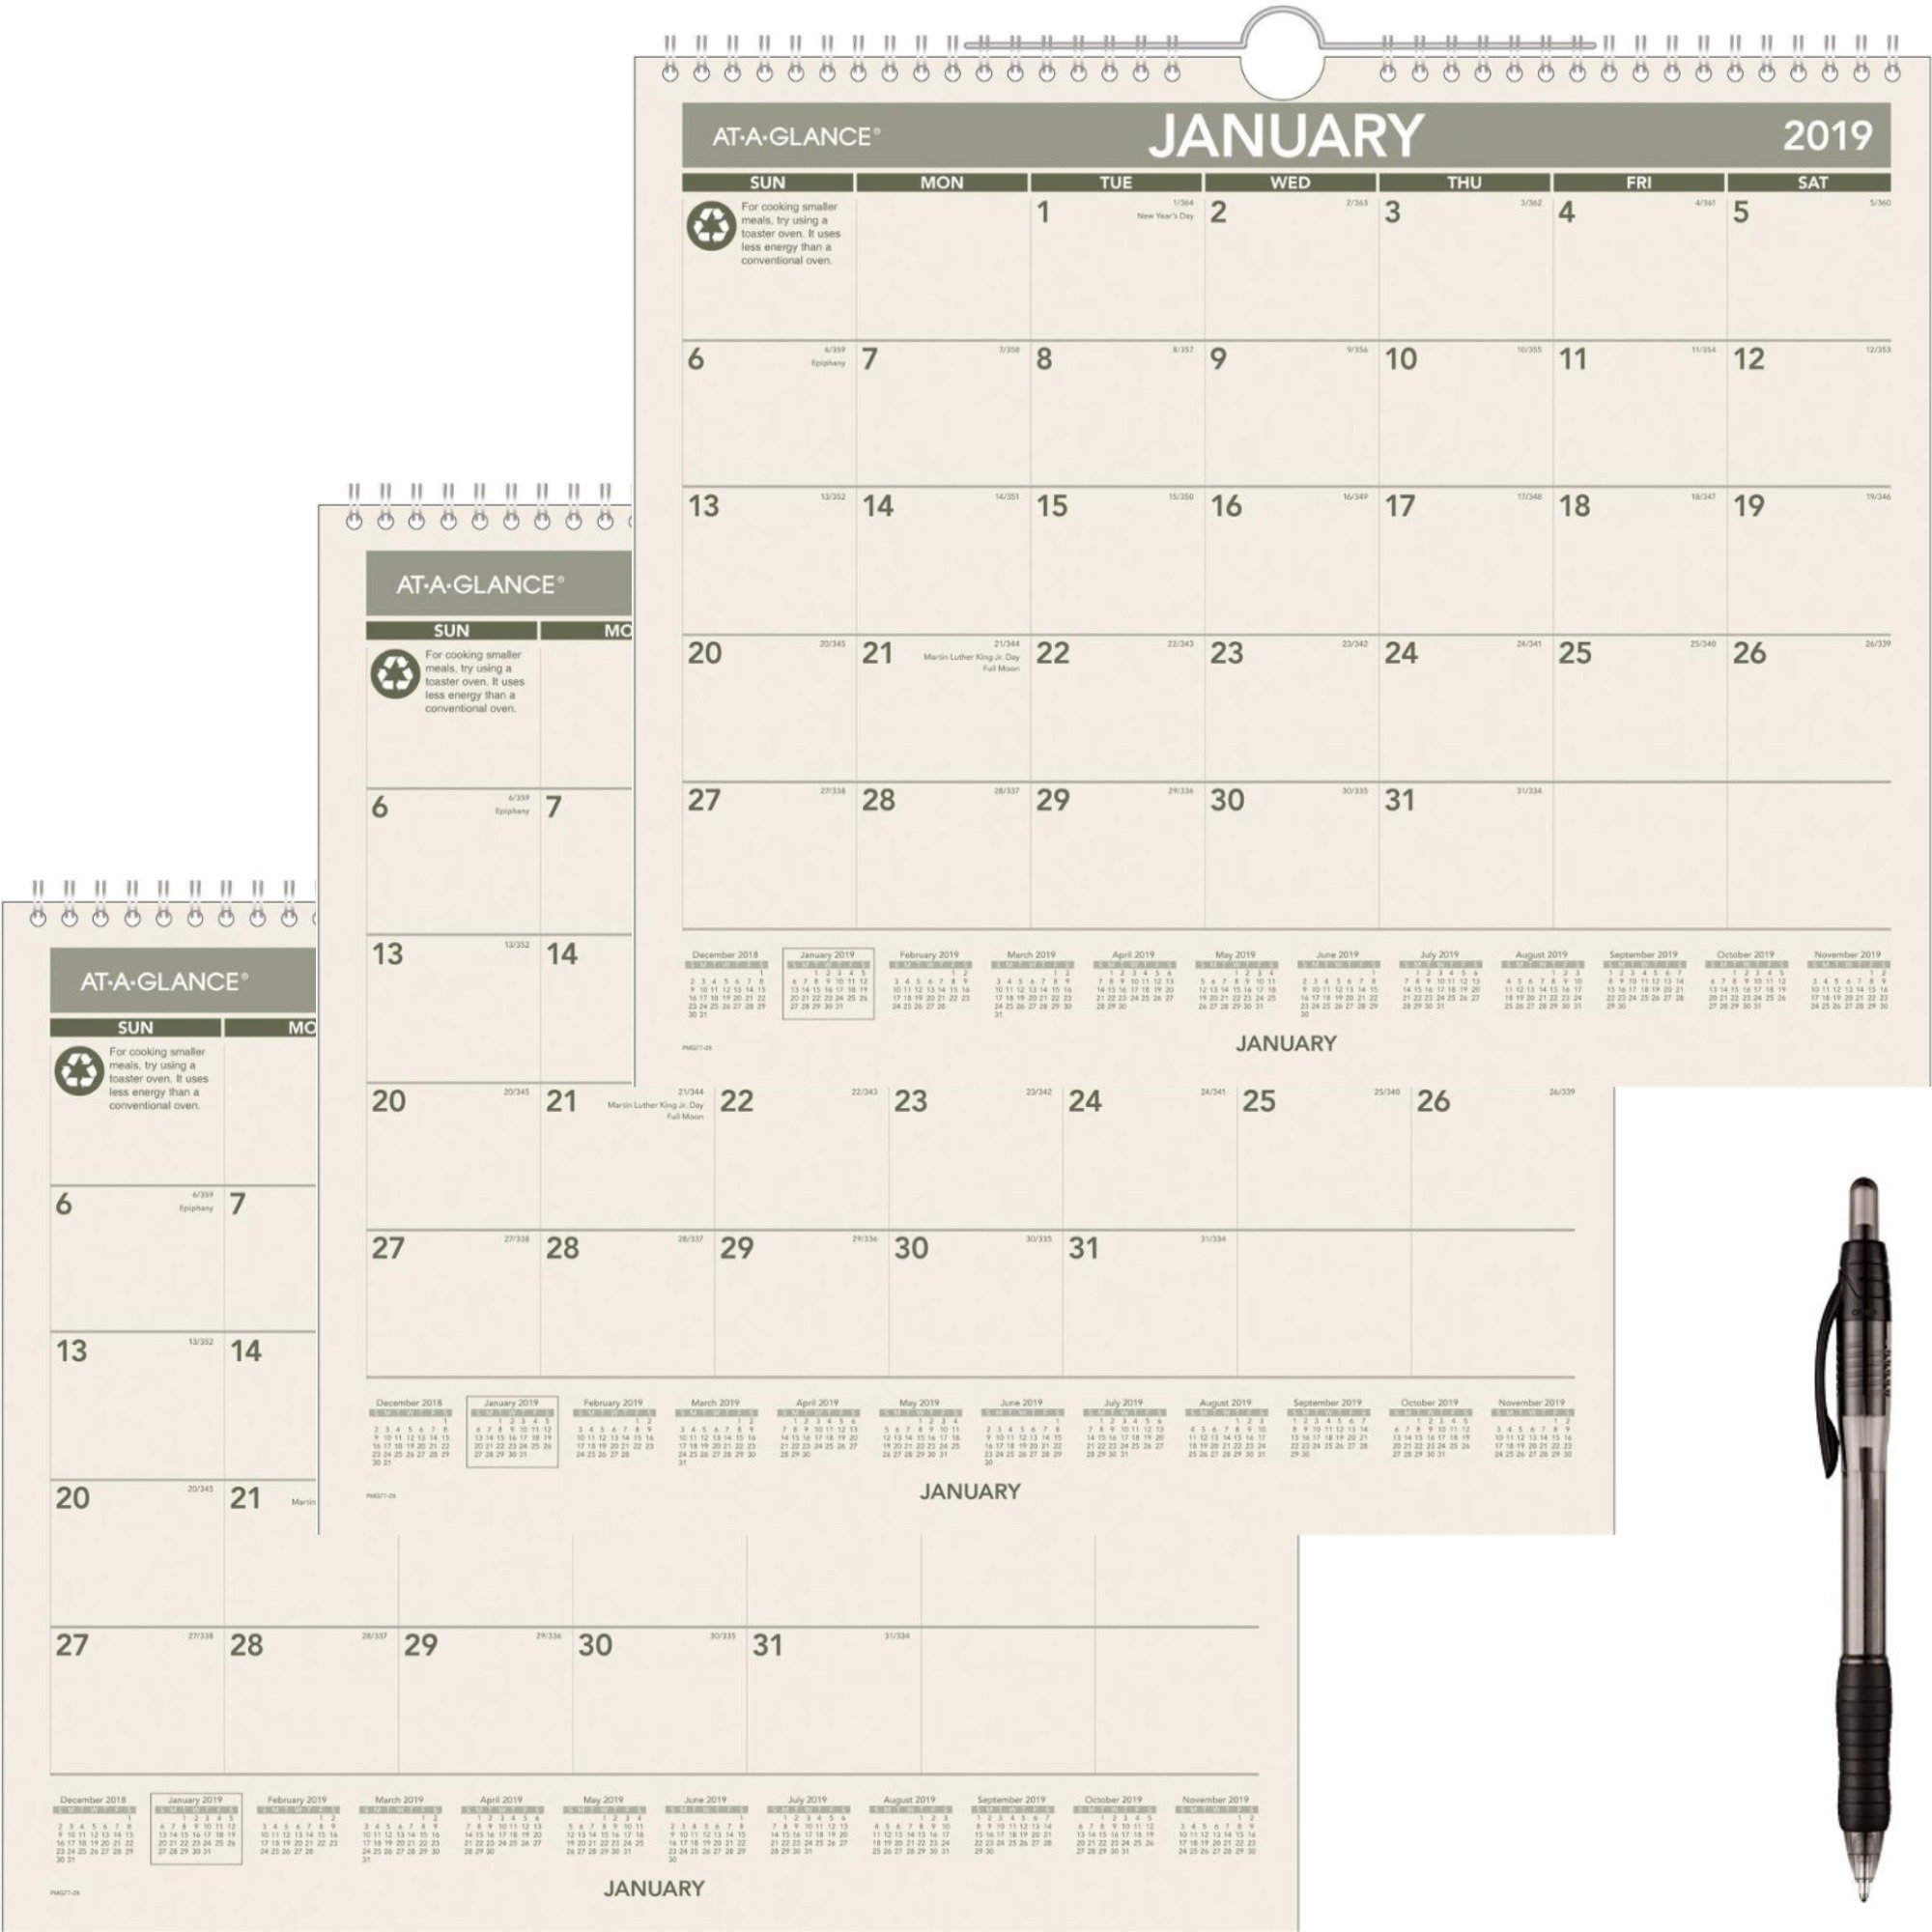 AT-A-GLANCE Monthly Wall Calendar, Recycled, January 2019 - December 2019, 14-7/8'' x 11-7/8'' (PMG7728) 3 Pack - Bundle Includes Black Ballpoint Pen